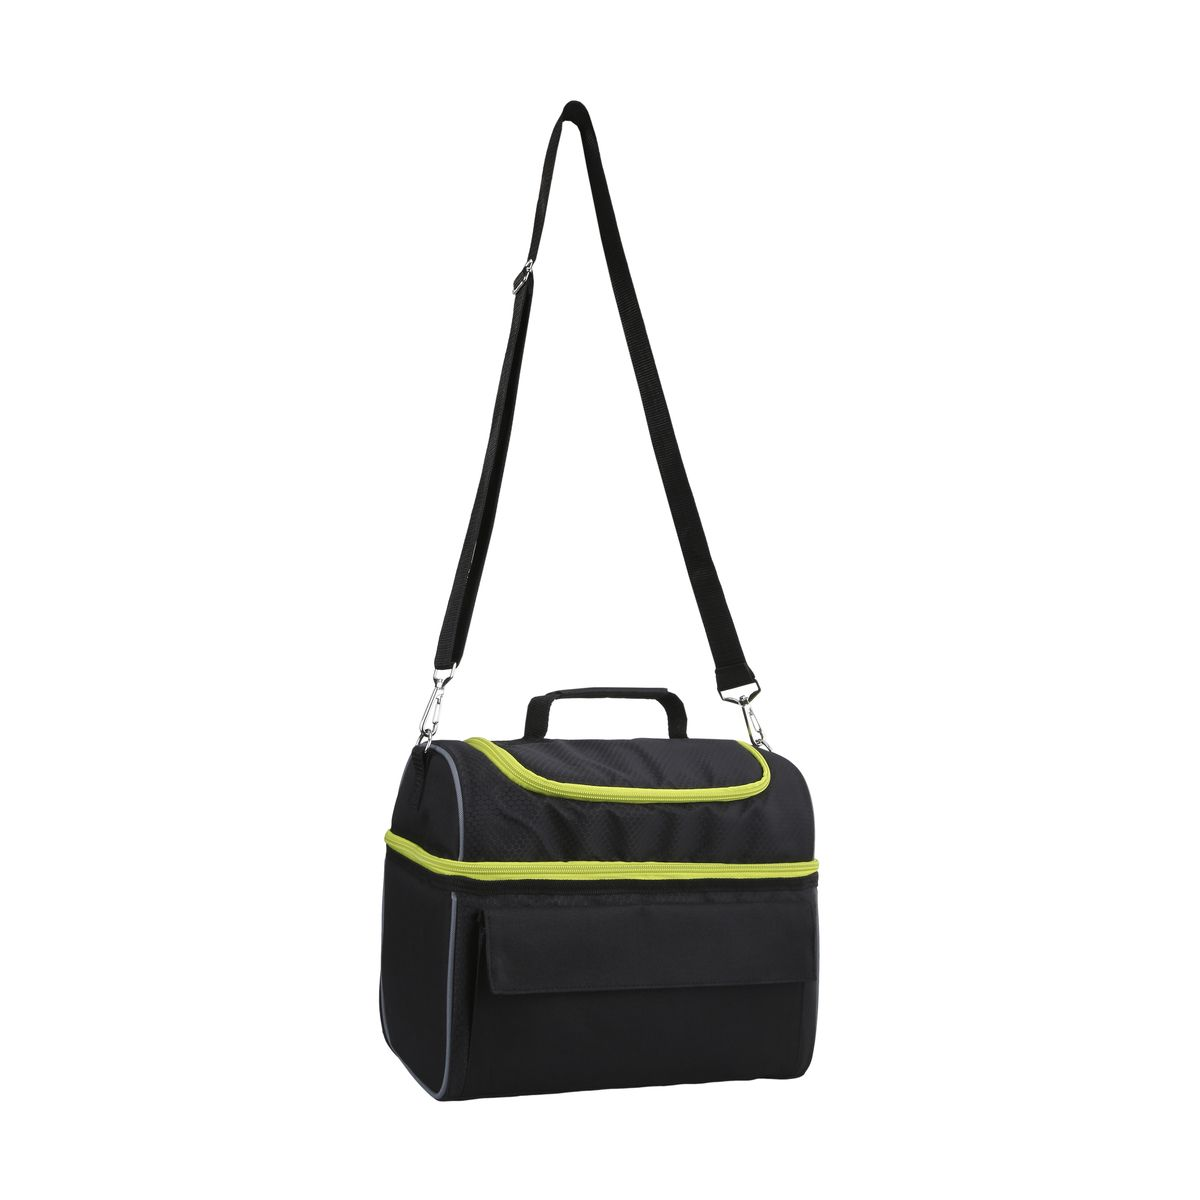 Tradie Lunch Bag - Black   Kmart   Food for Work   Lunch